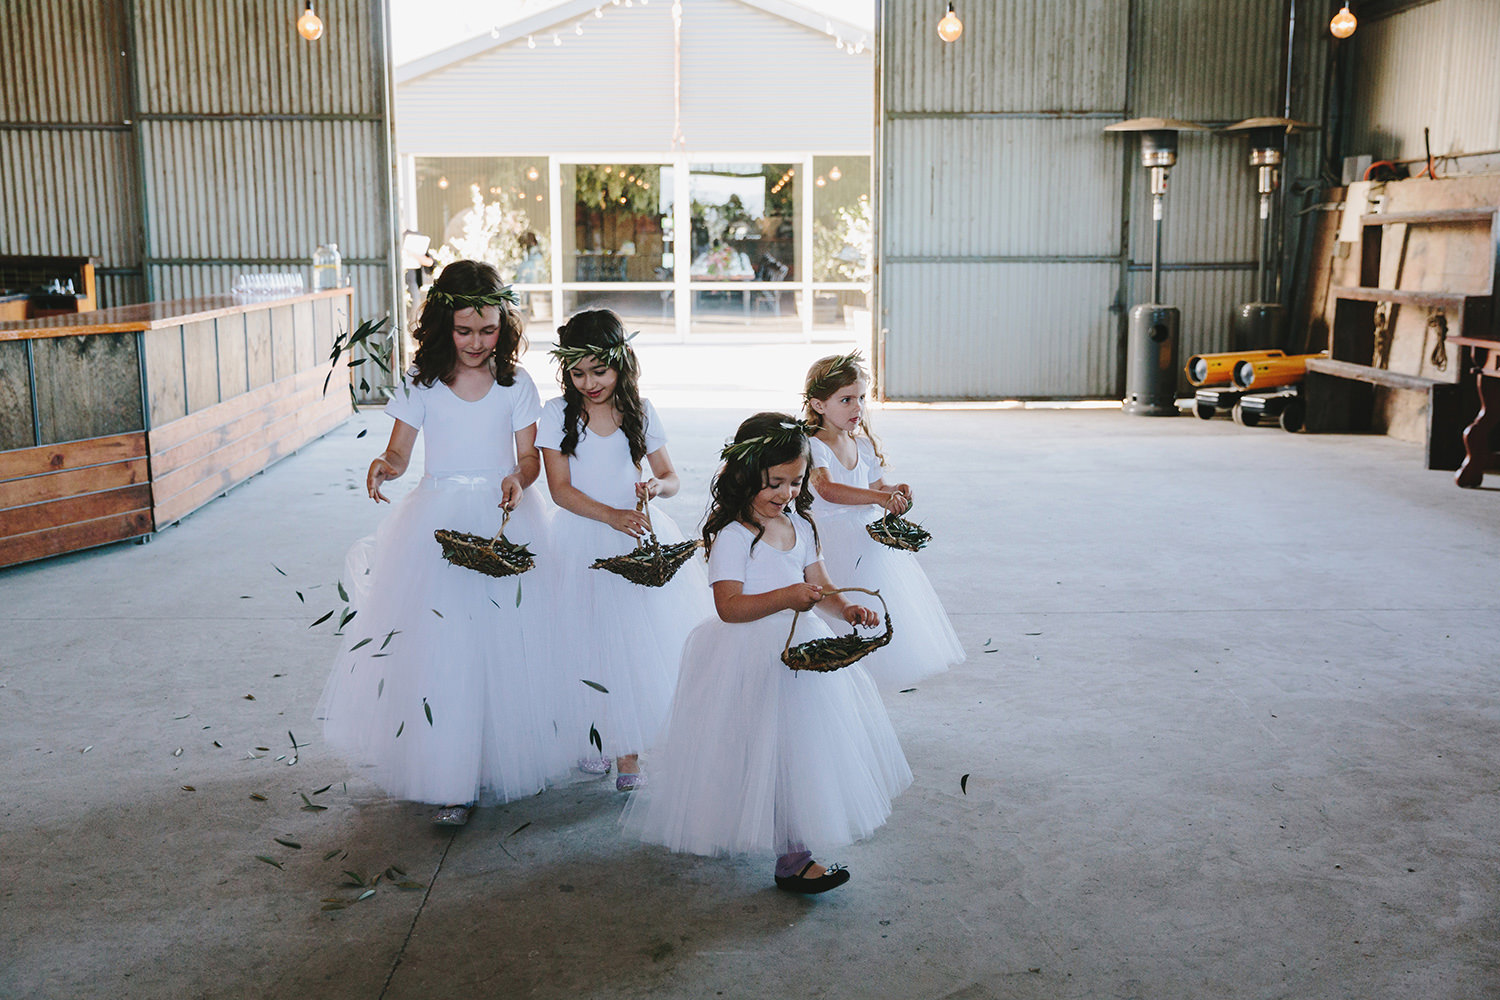 Melbourne_Winery_Wedding_Chris_Merrily082.JPG